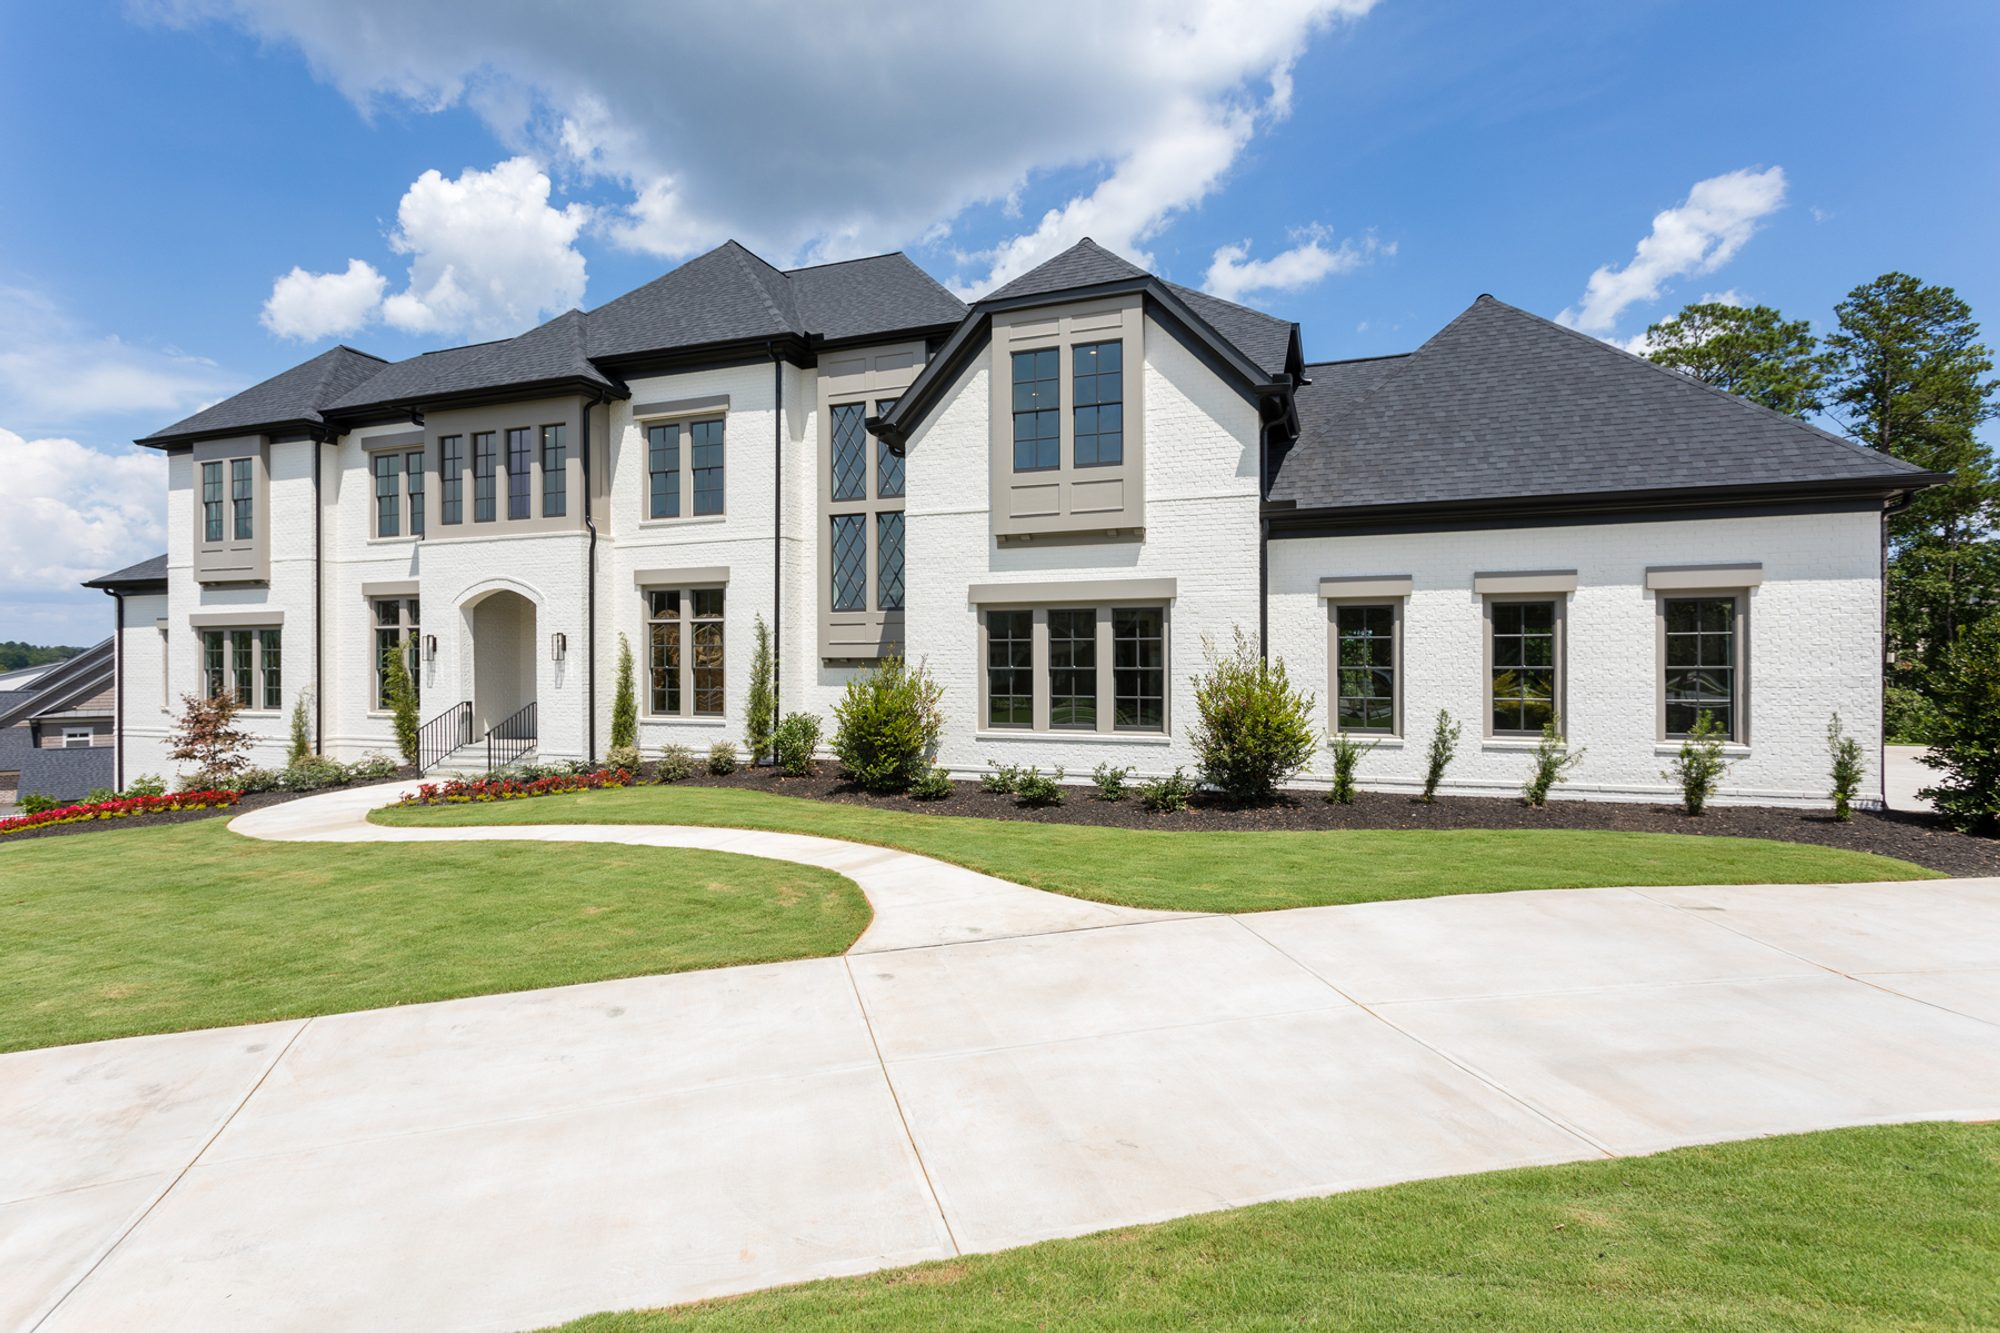 Modern style new home with painted white brick siding.